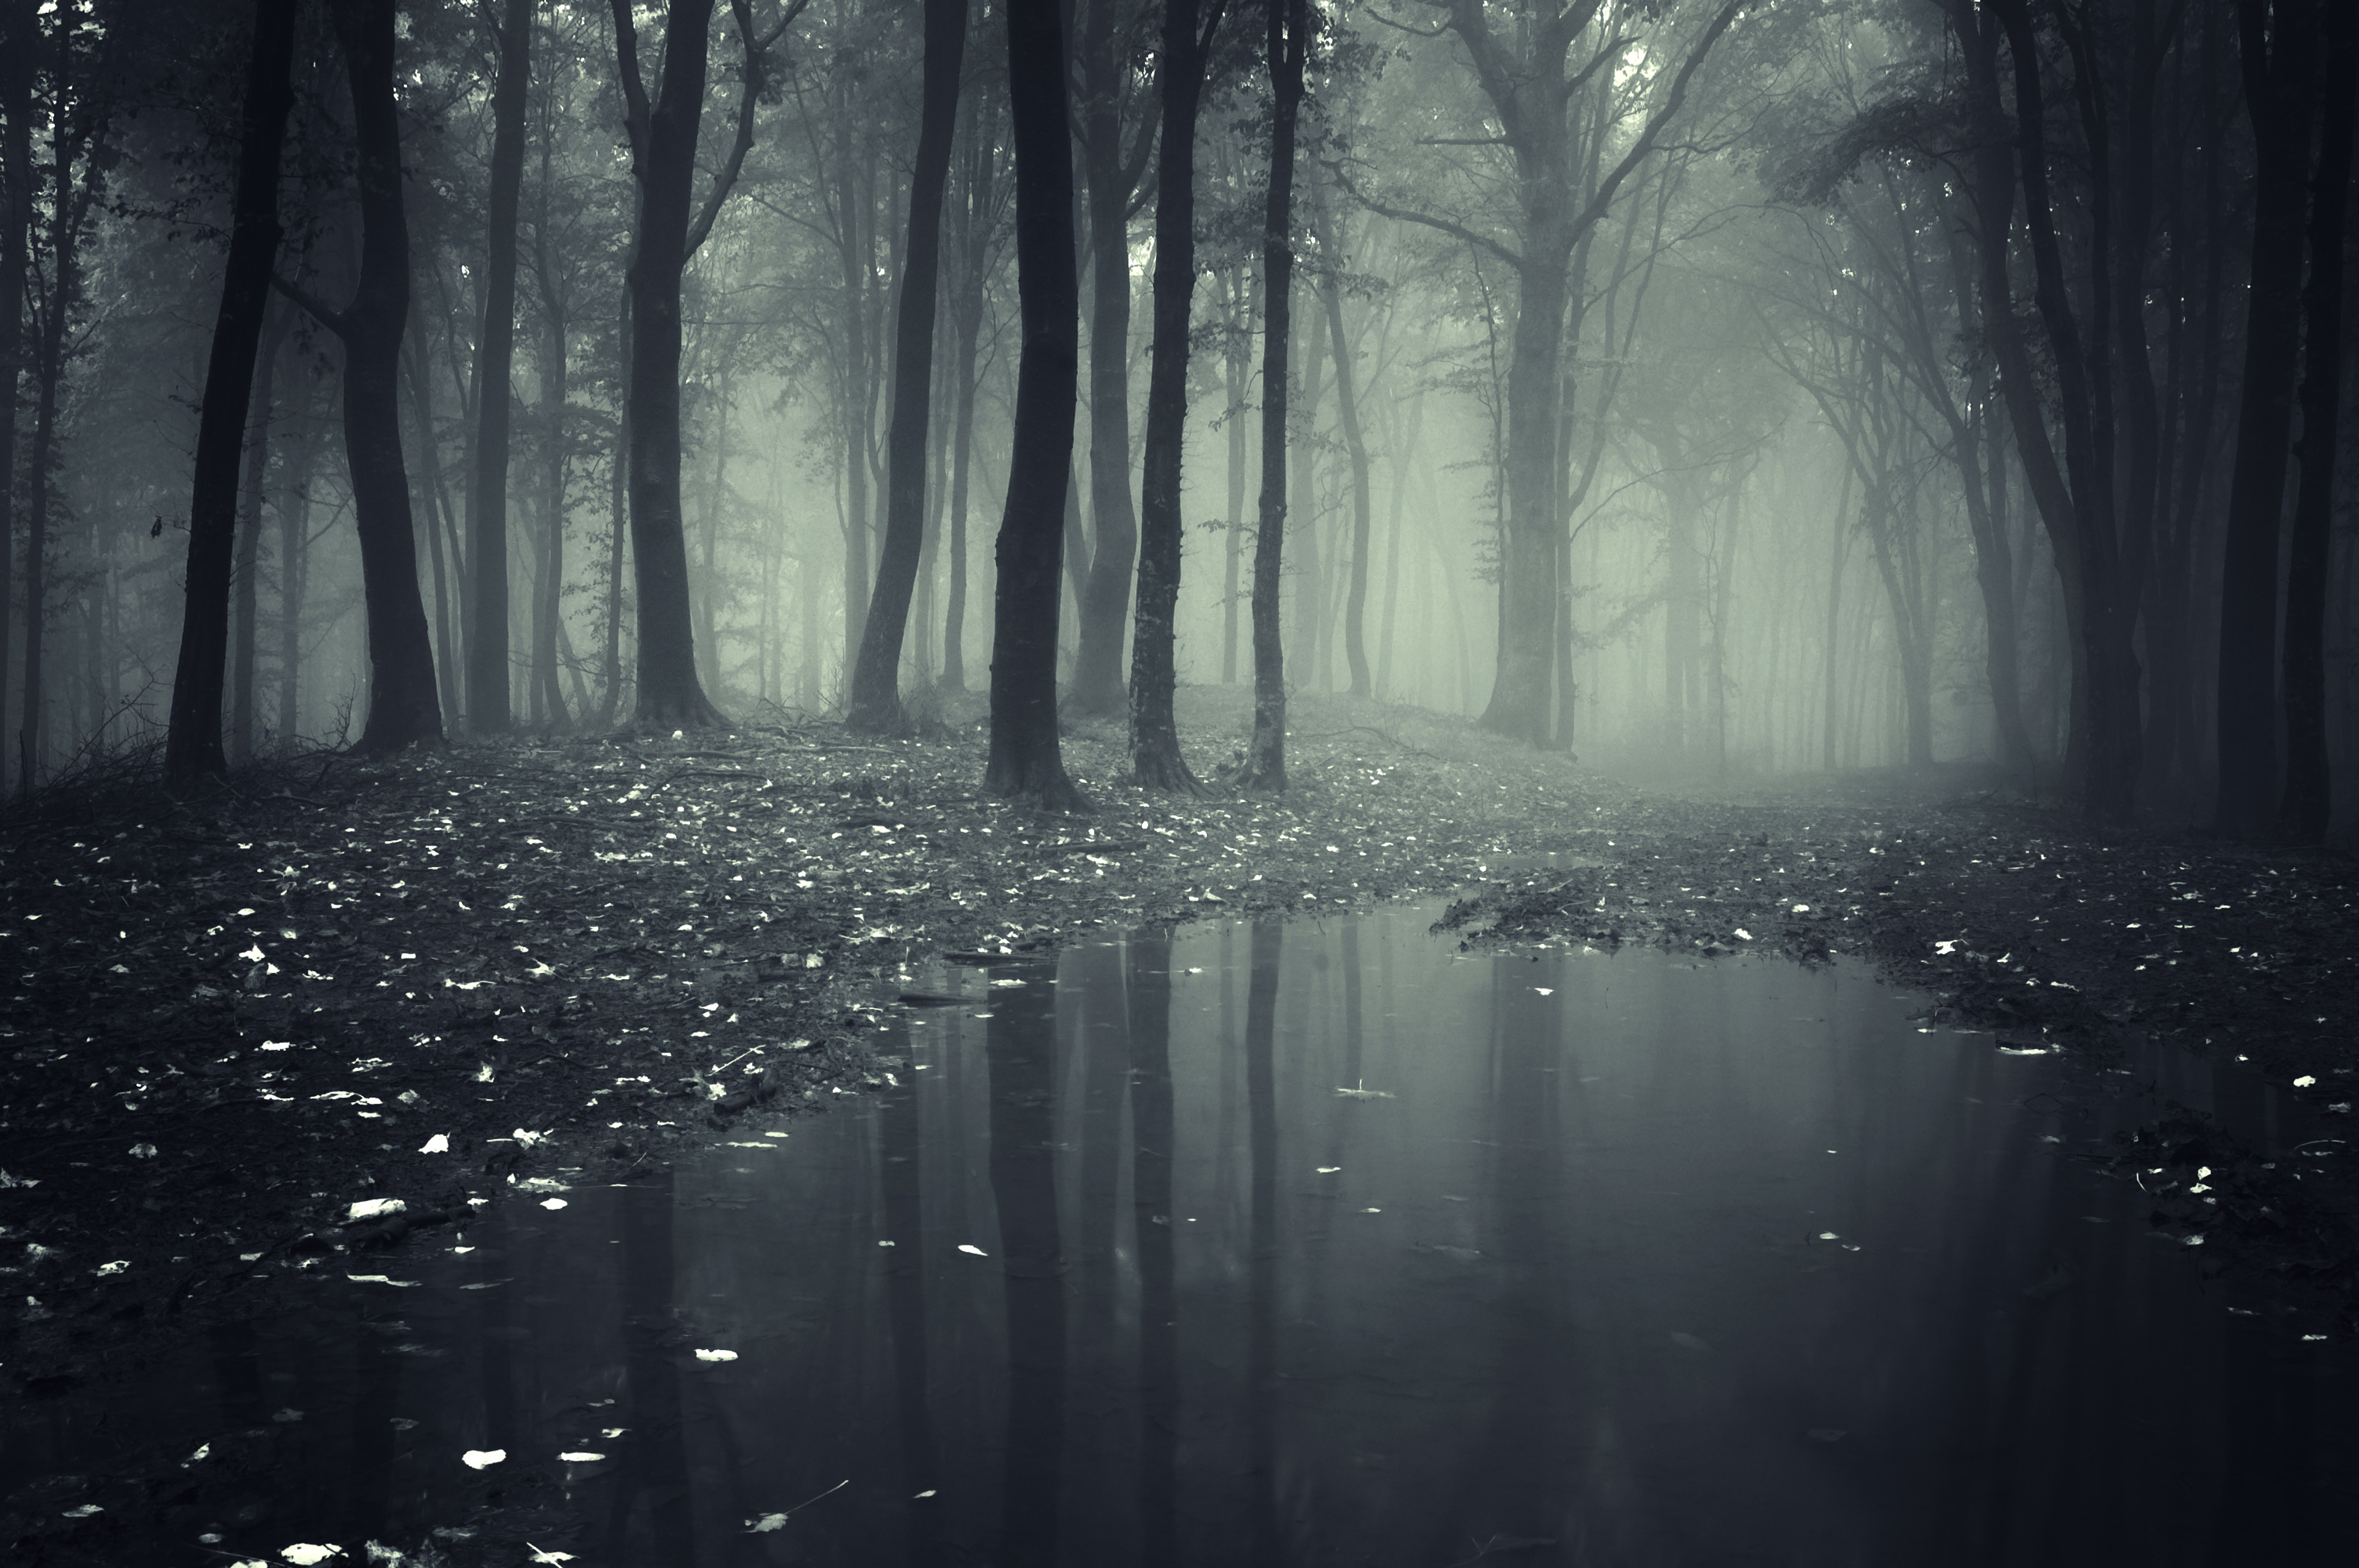 Forests Fog Puddle Nature wallpaper | 4500x2992 | 171978 ...